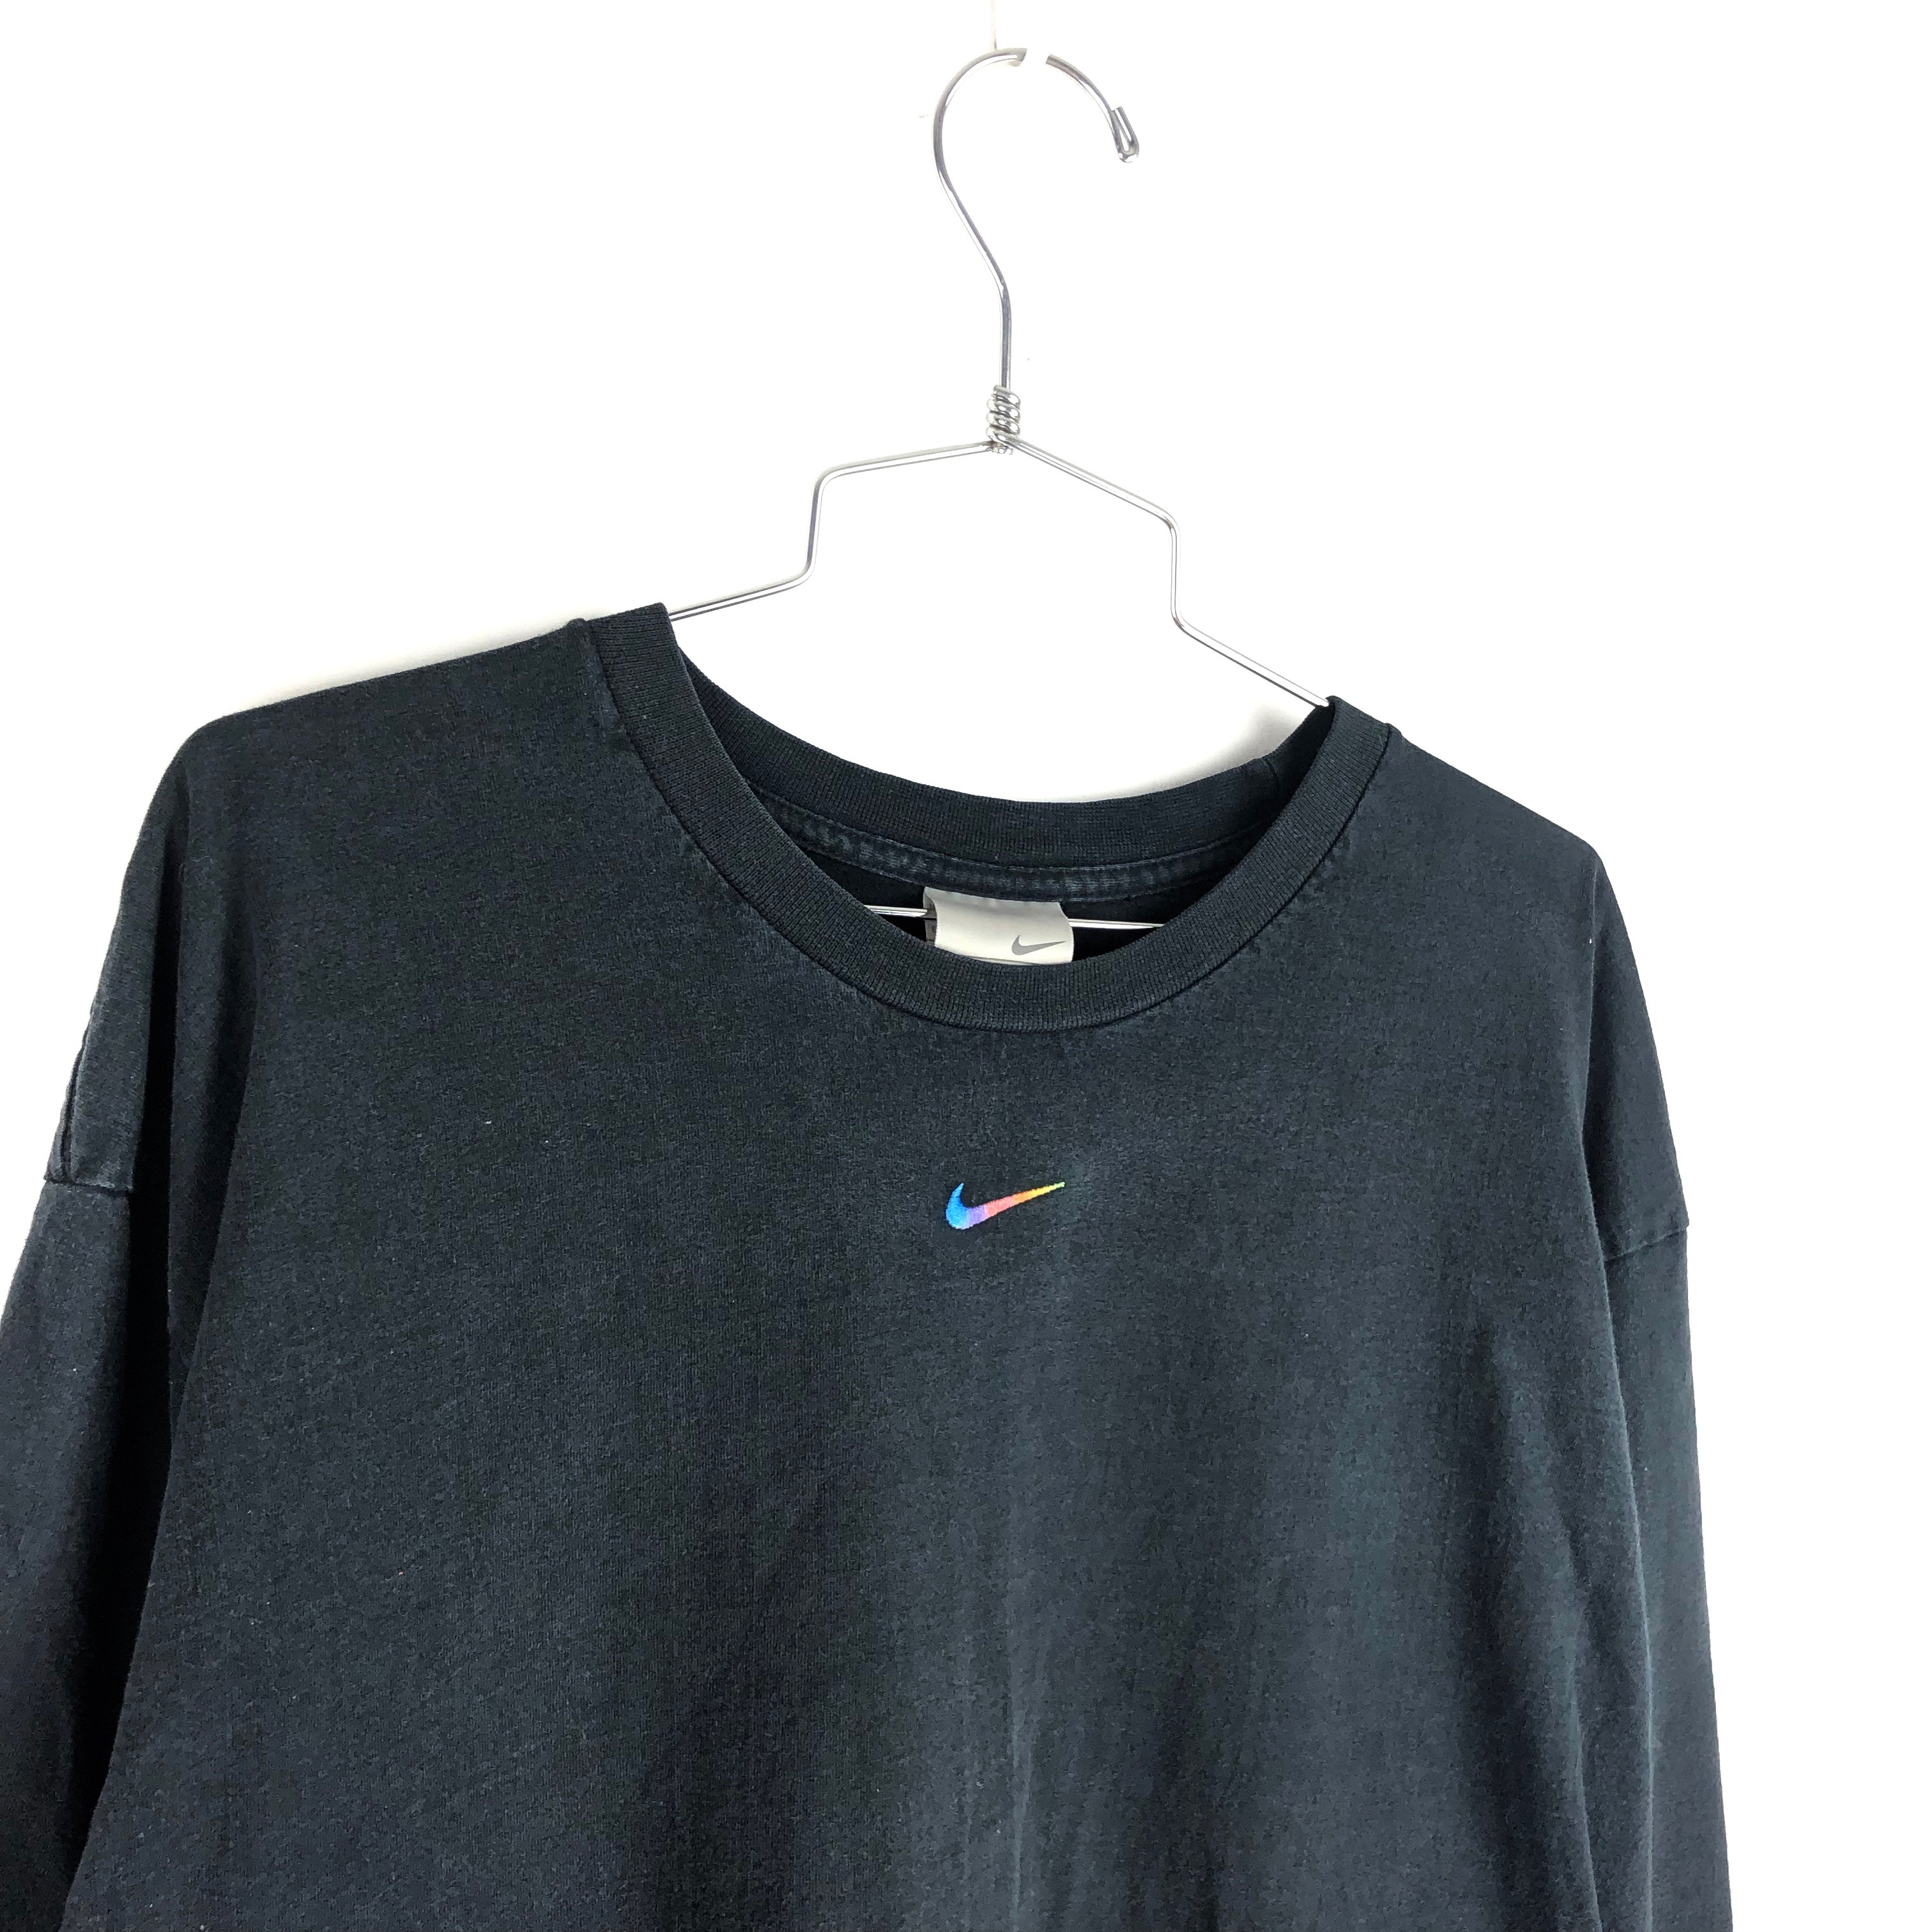 nike t shirt logo in middle